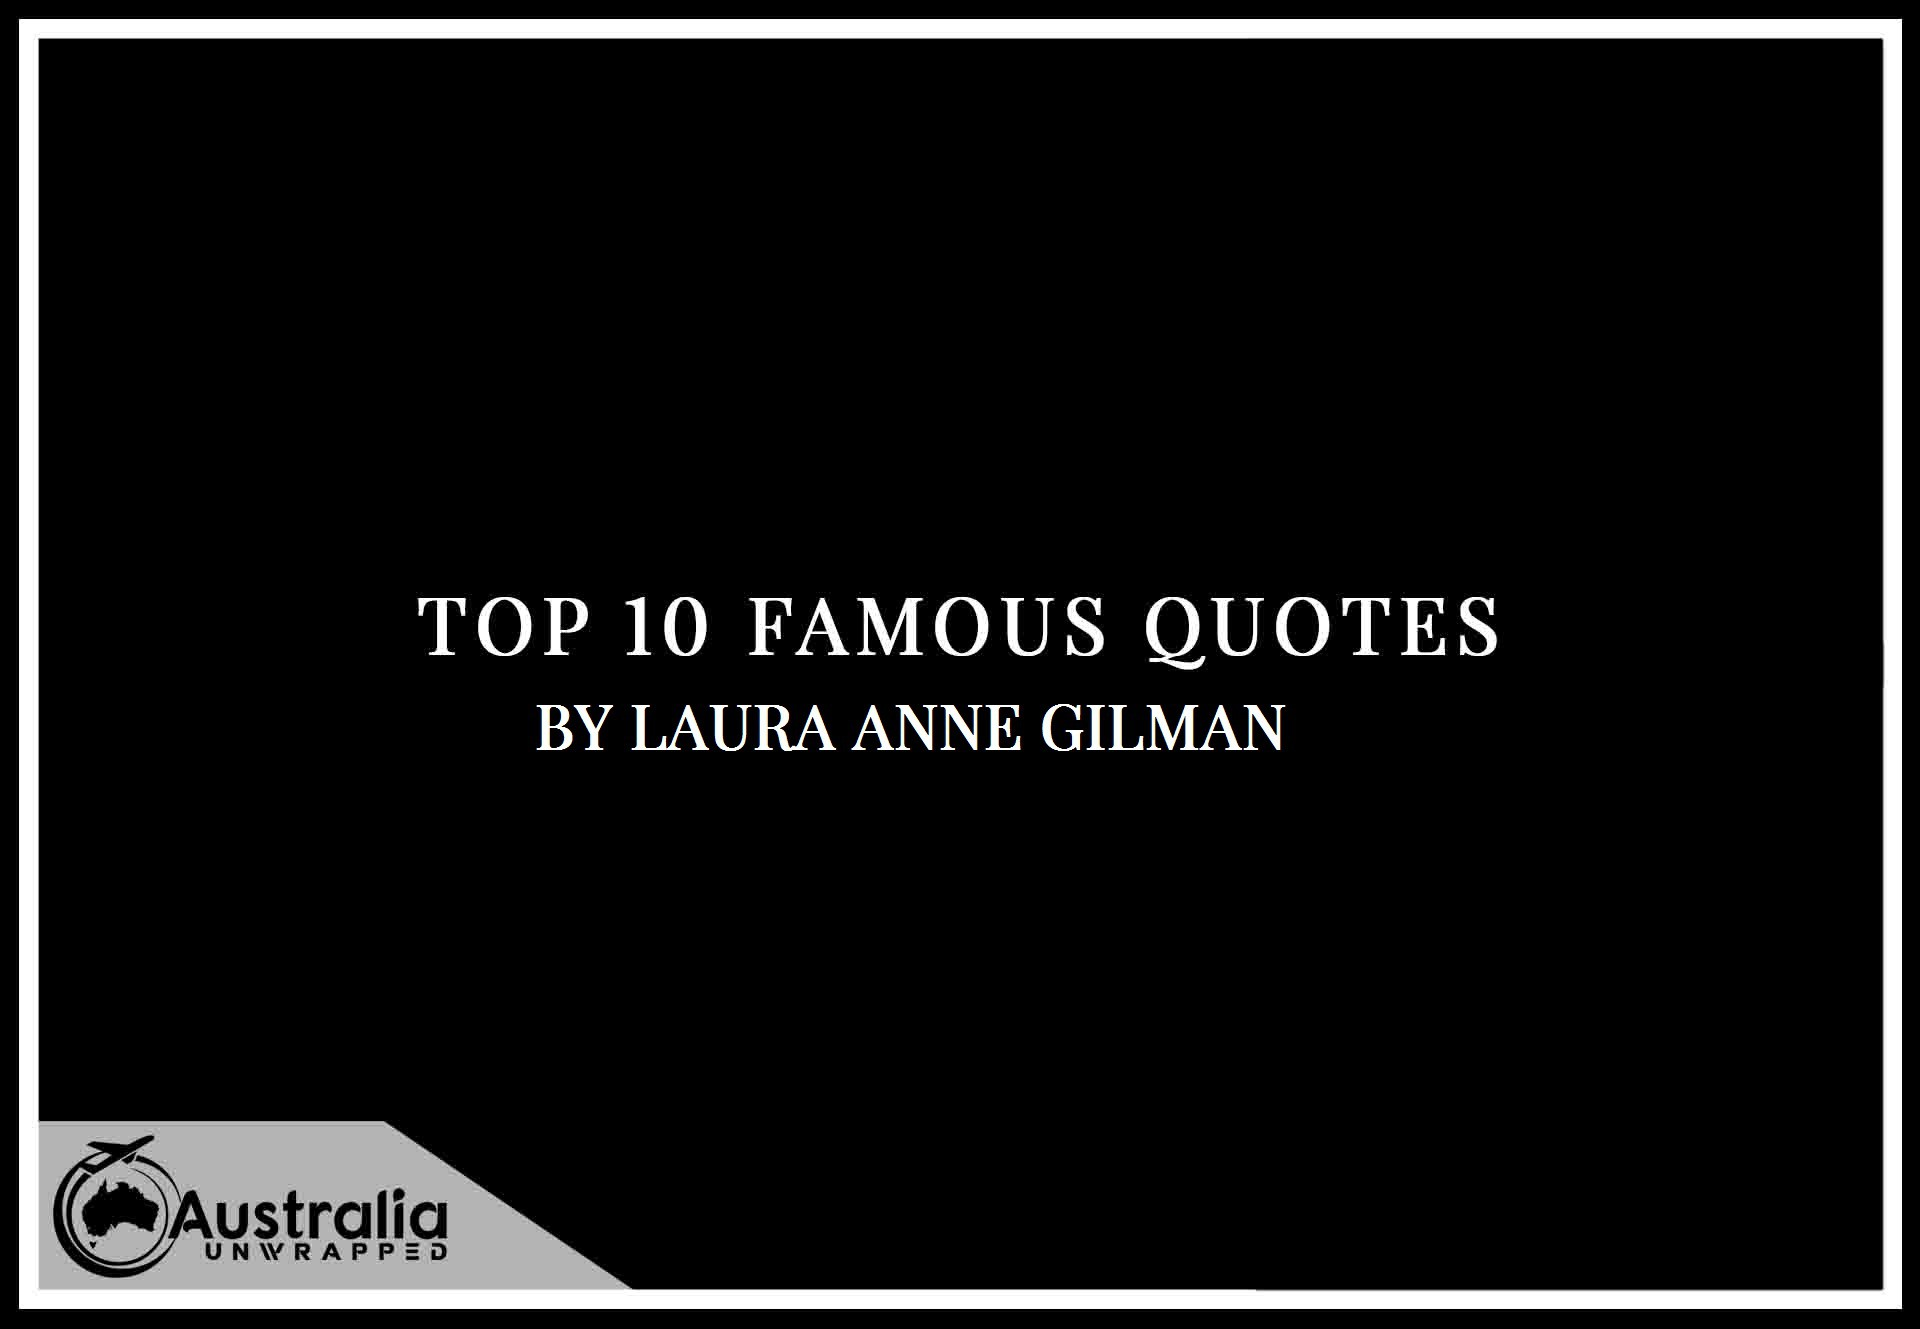 Laura Anne Gilman's Top 10 Popular and Famous Quotes